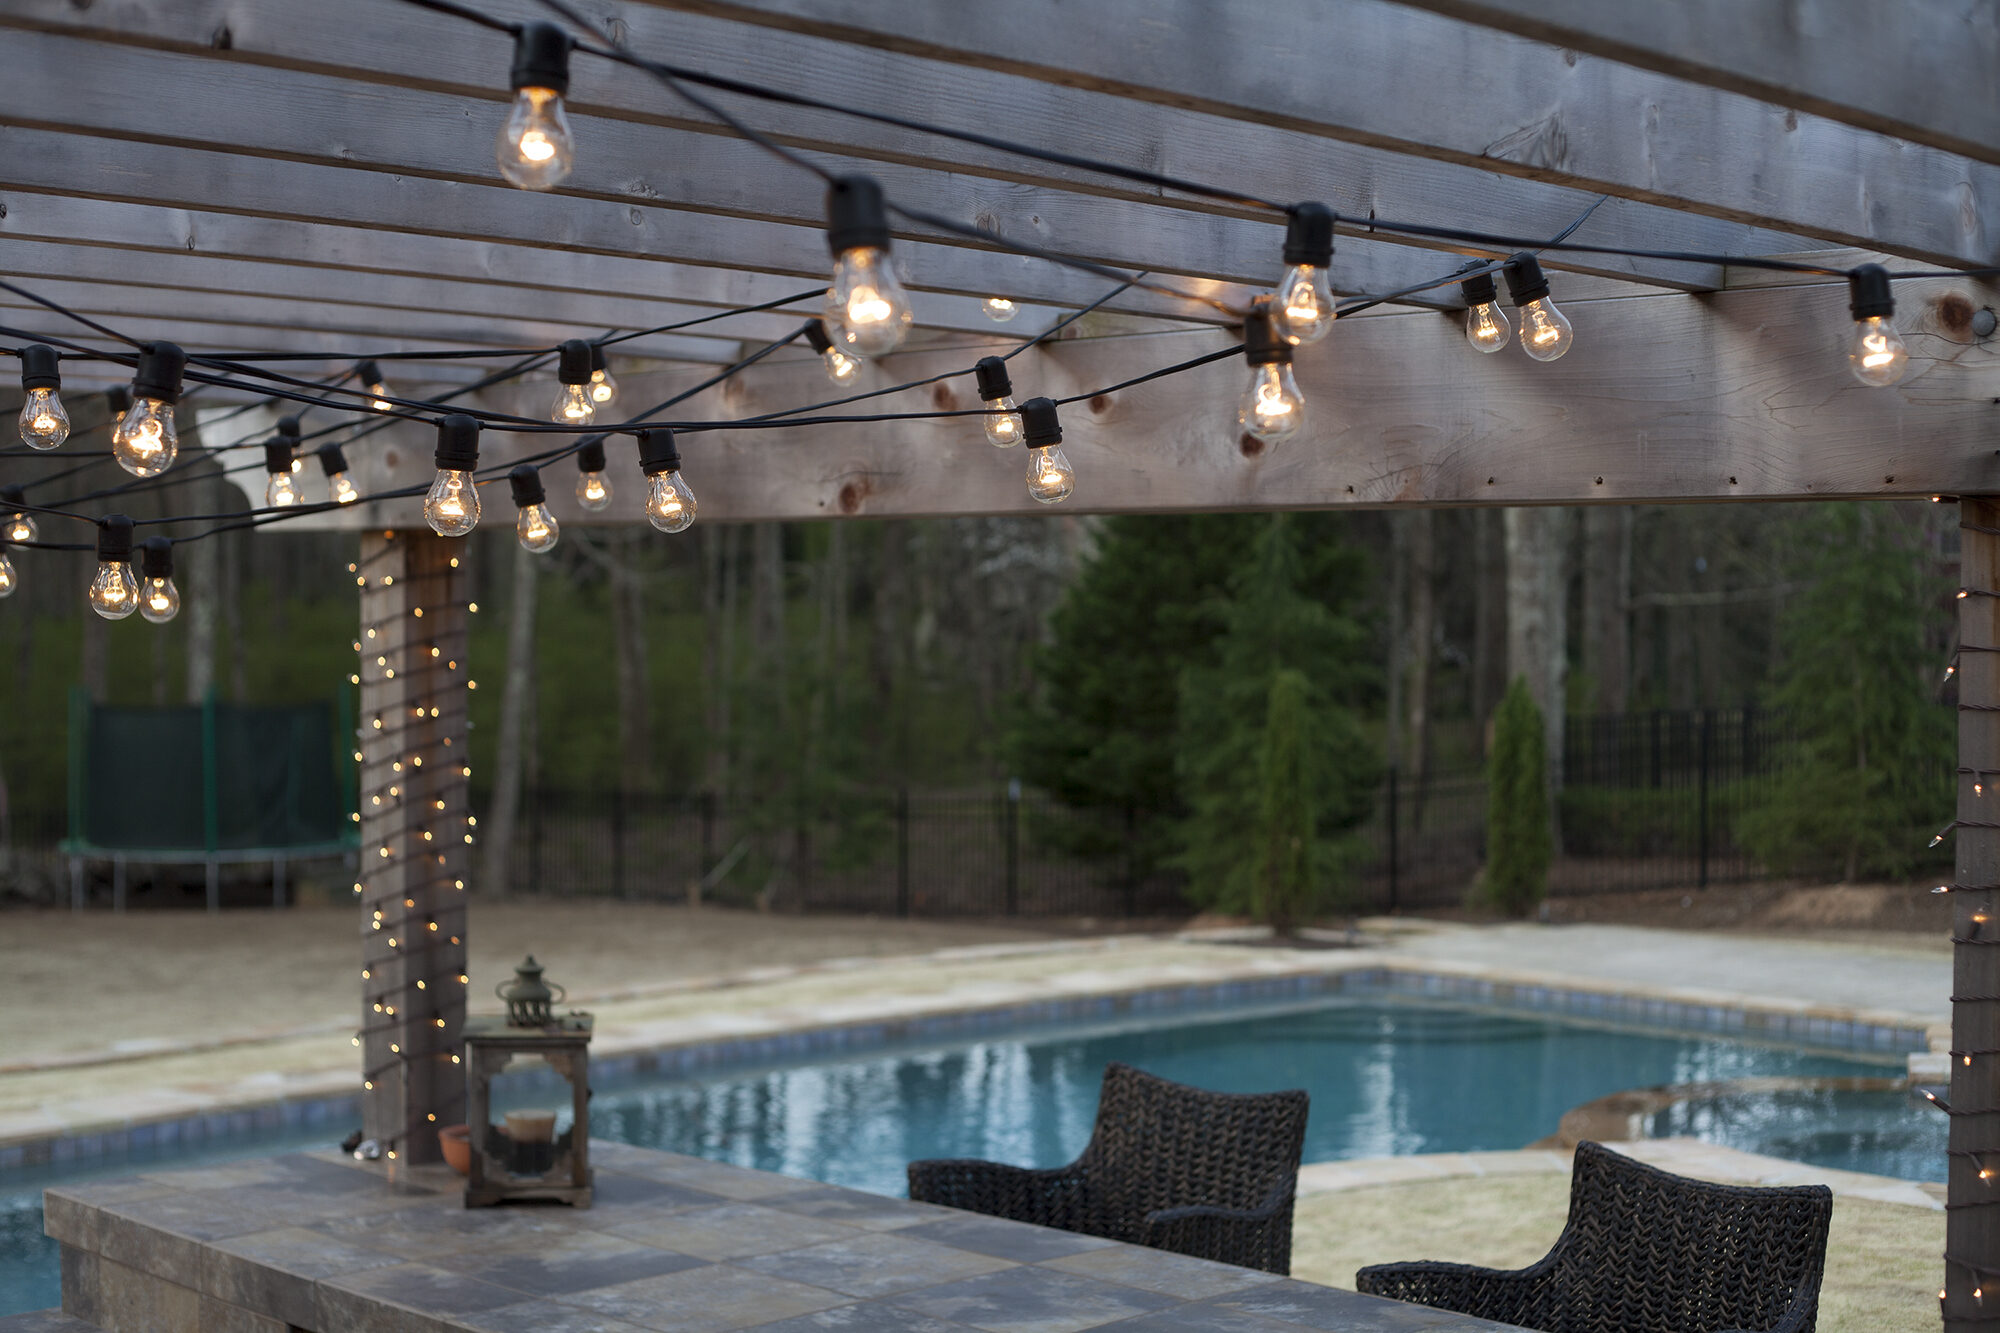 How To Hang String Lights On Screened Porch : Hanging Patio String Lights: A Pattern of Perfection - Yard Envy